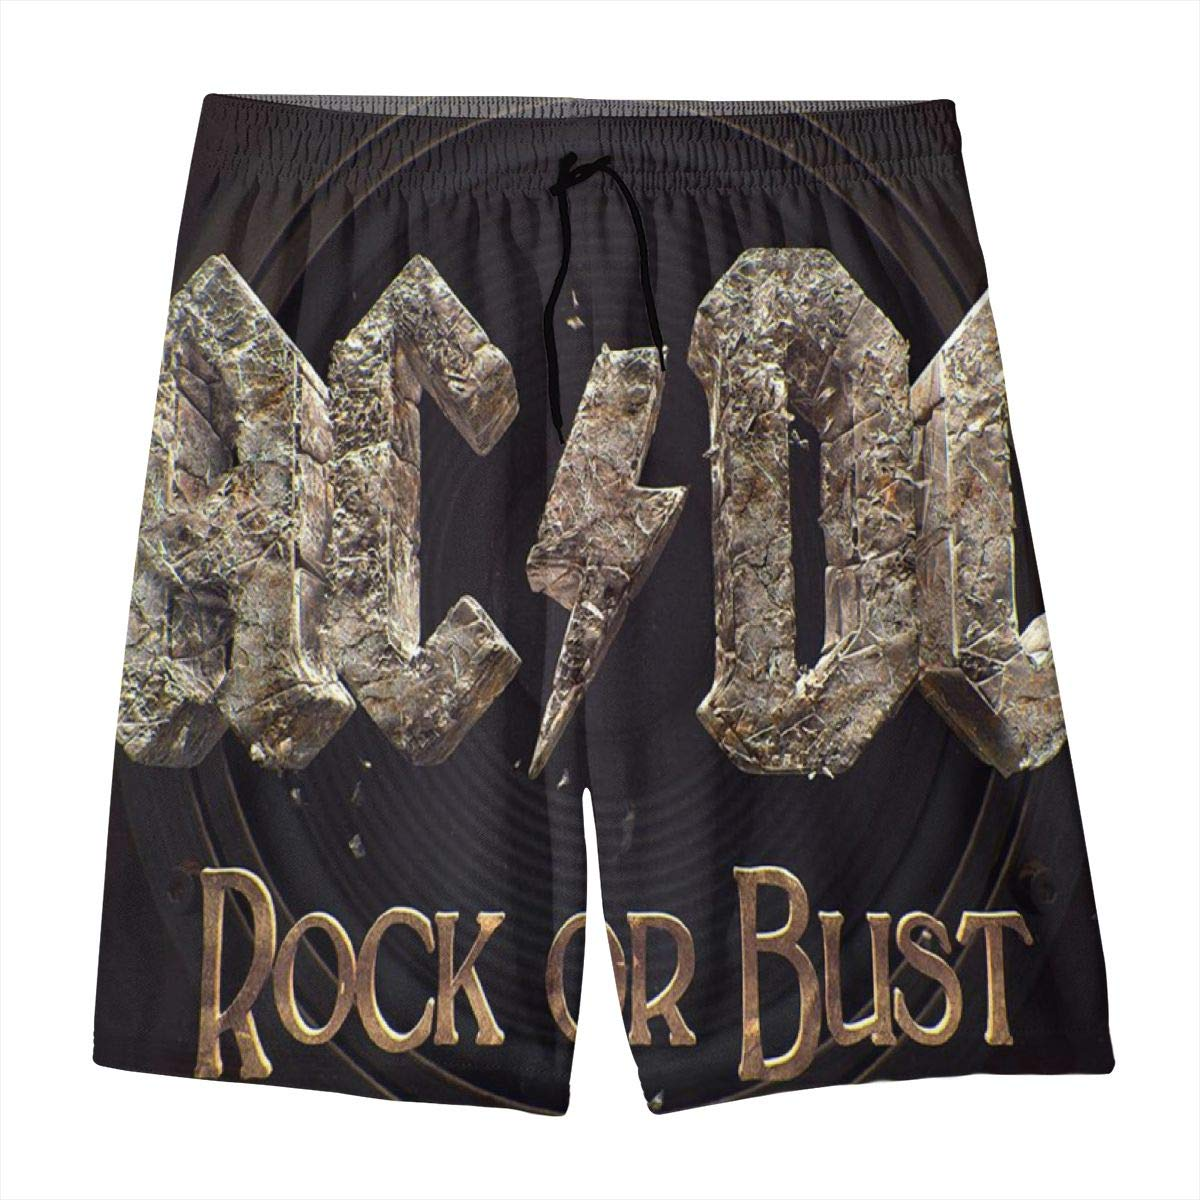 ACDC Rock Or Bust Adolescent Beach Pants Barbecue Drawstring Surfers Shorts